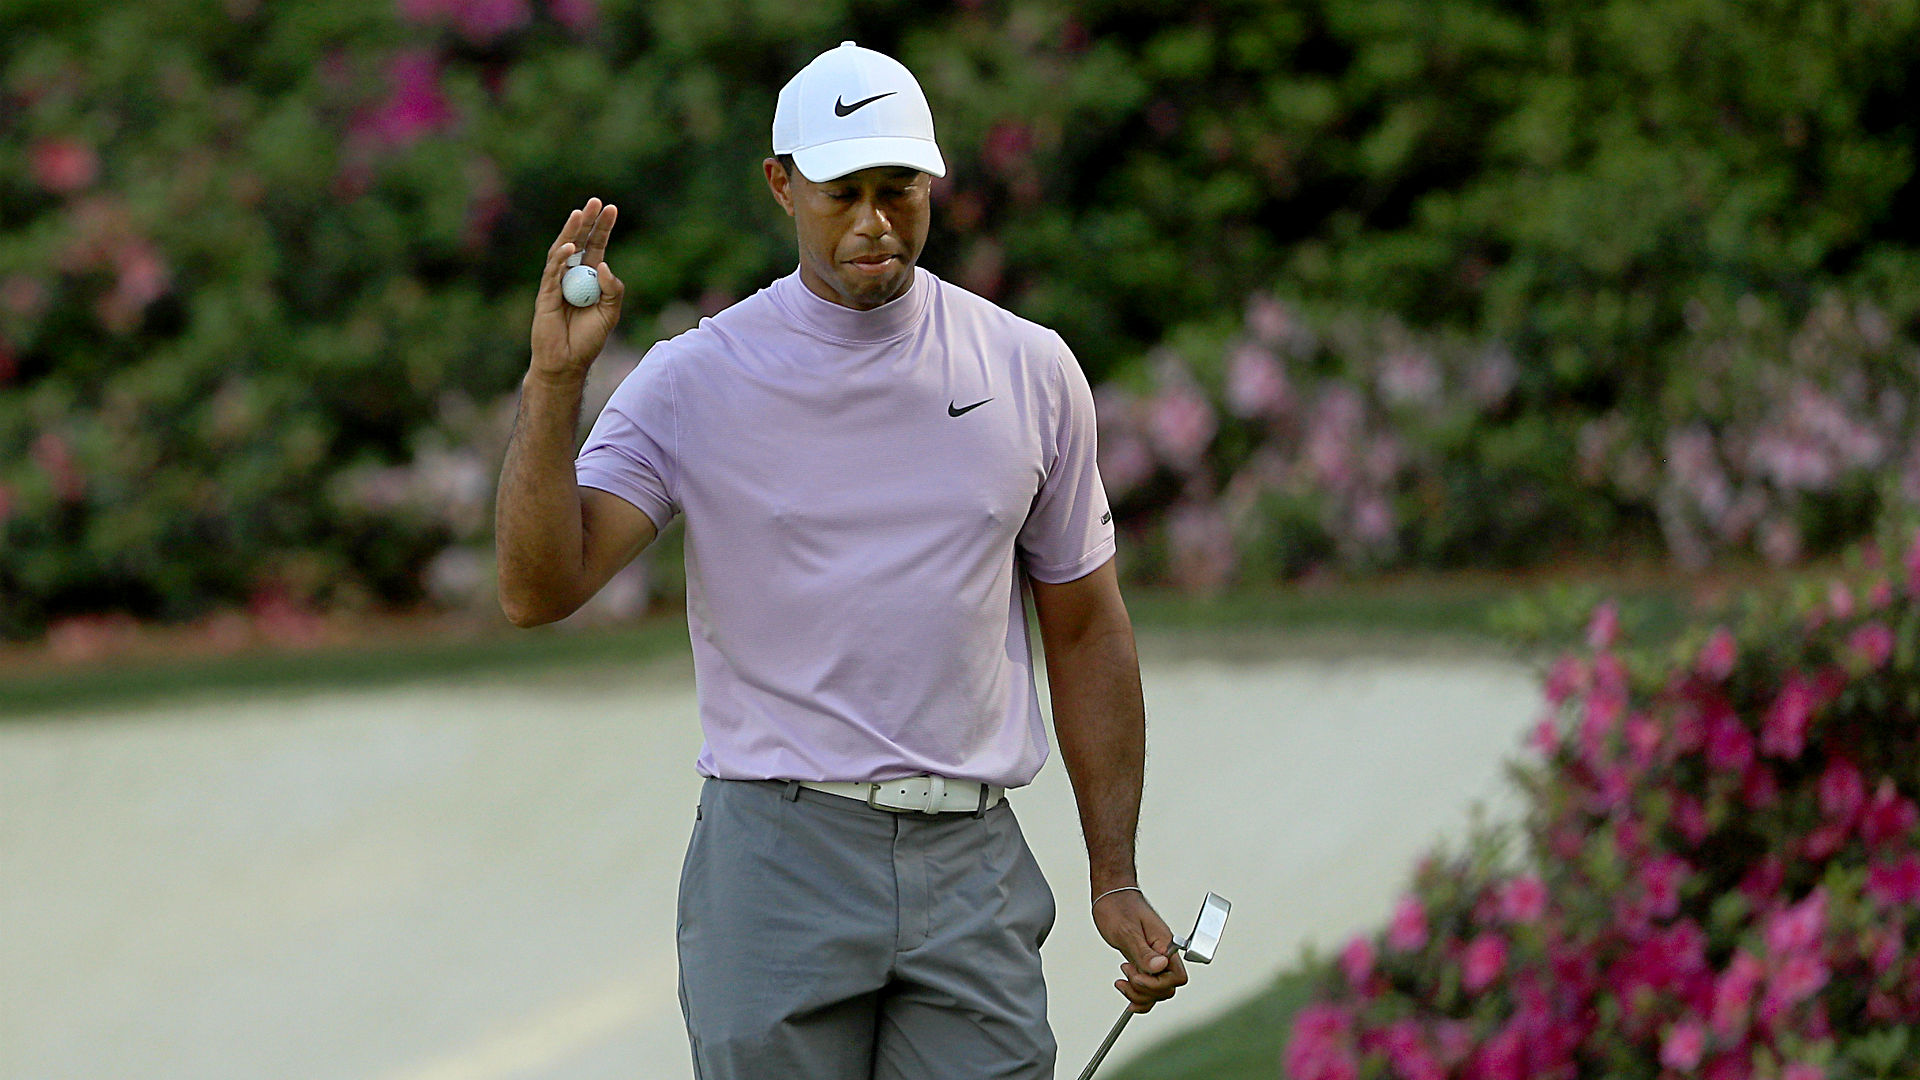 Tiger Woods win means million-dollar payday for bettor""